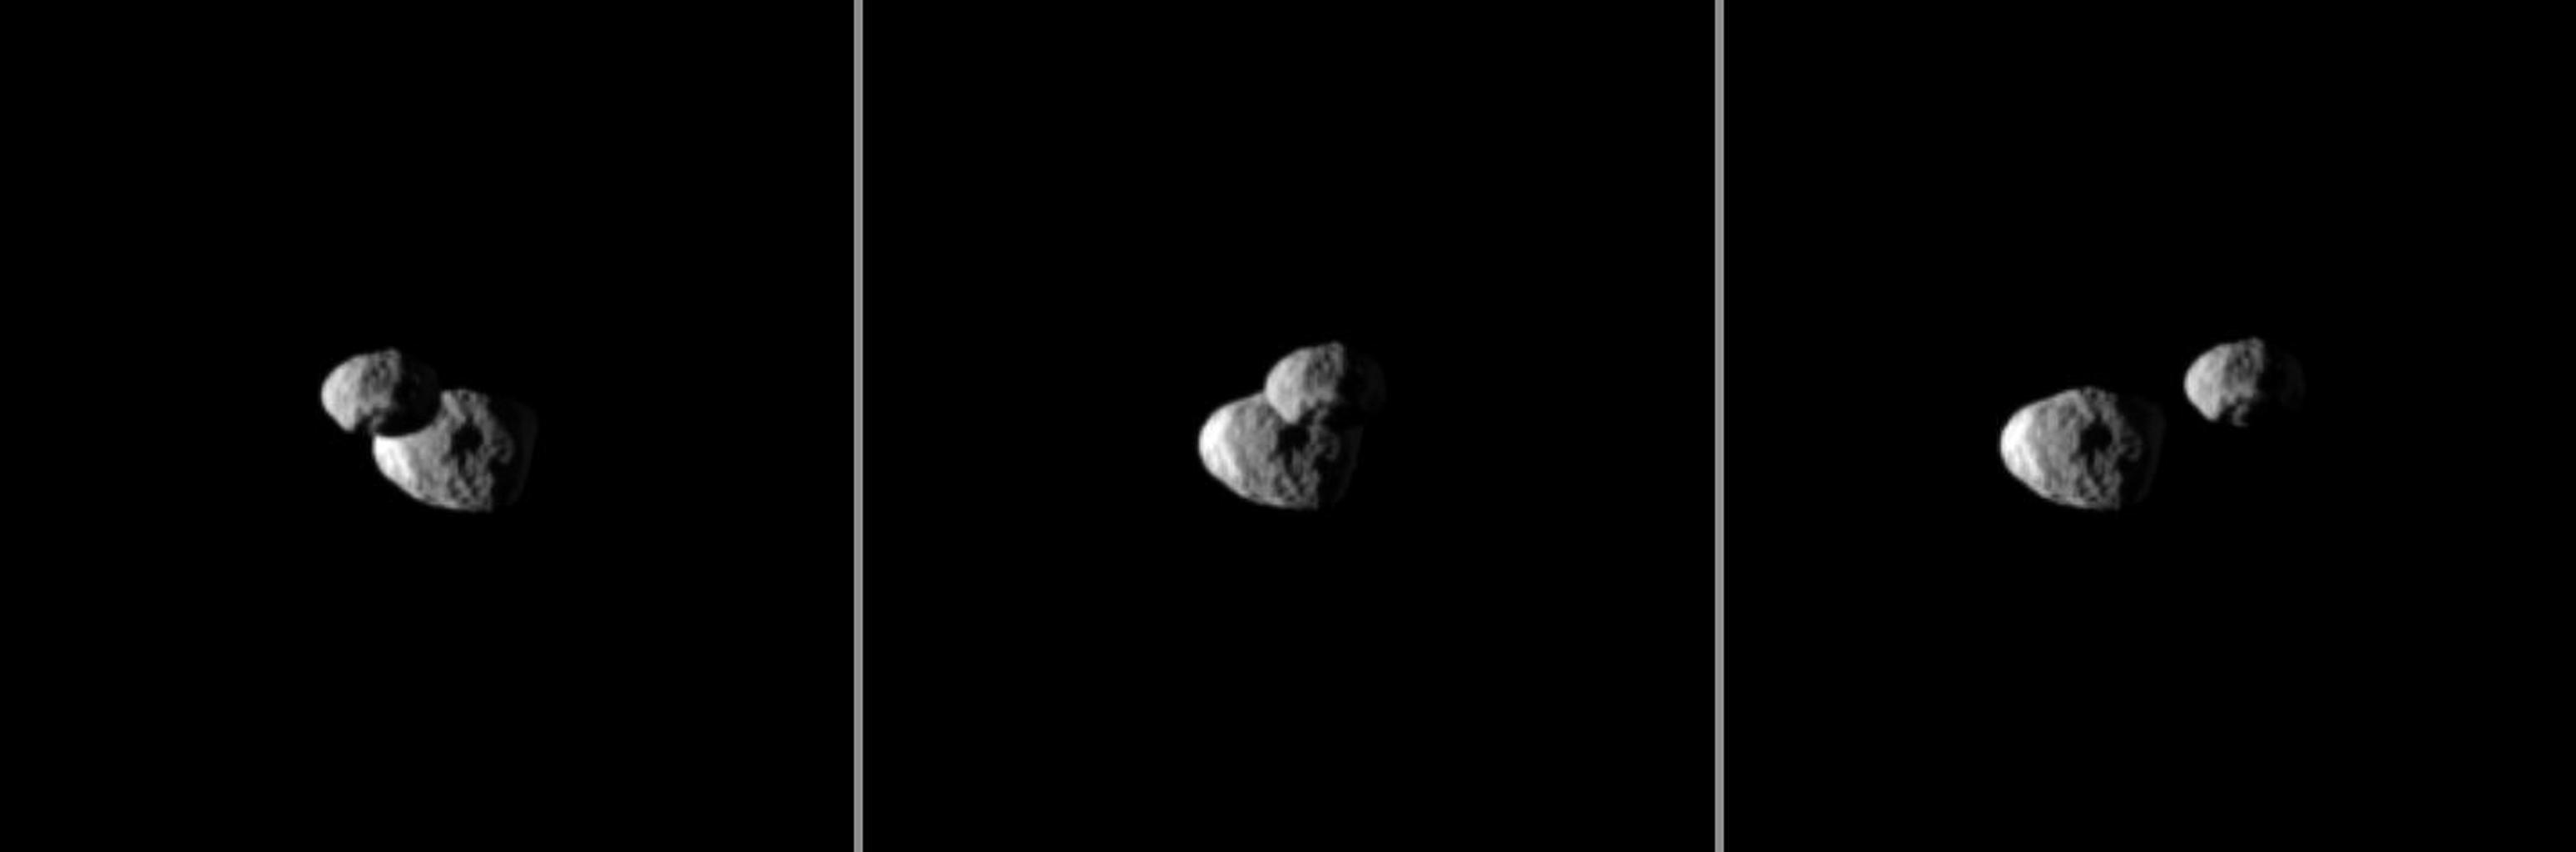 "Saturn's moon Epimetheus passes in front of Janus in this ""mutual event"" (one moon passing close to or in front of another) chronicled by NASA's Cassini spacecraft. These three images were each taken a little more than a minute apart."